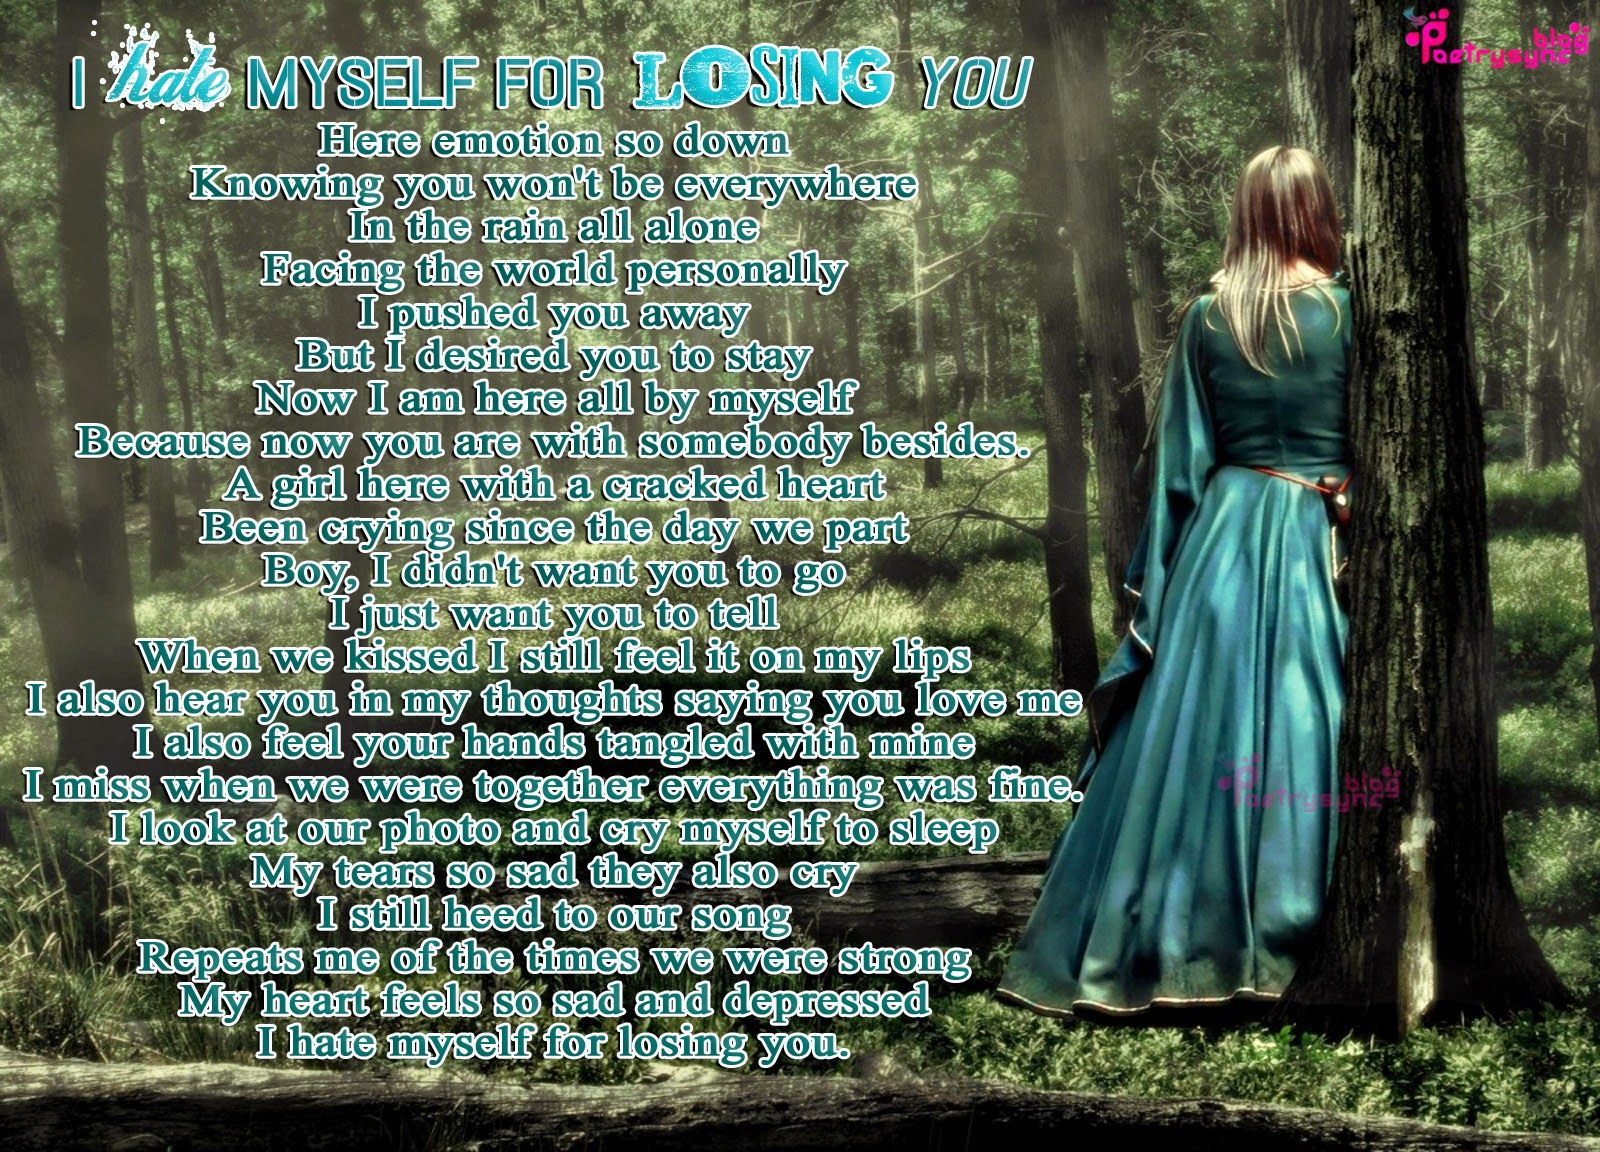 I Hate My Self Poems: Very Sad Poem After Lost Love I Hate Myself For Losing You